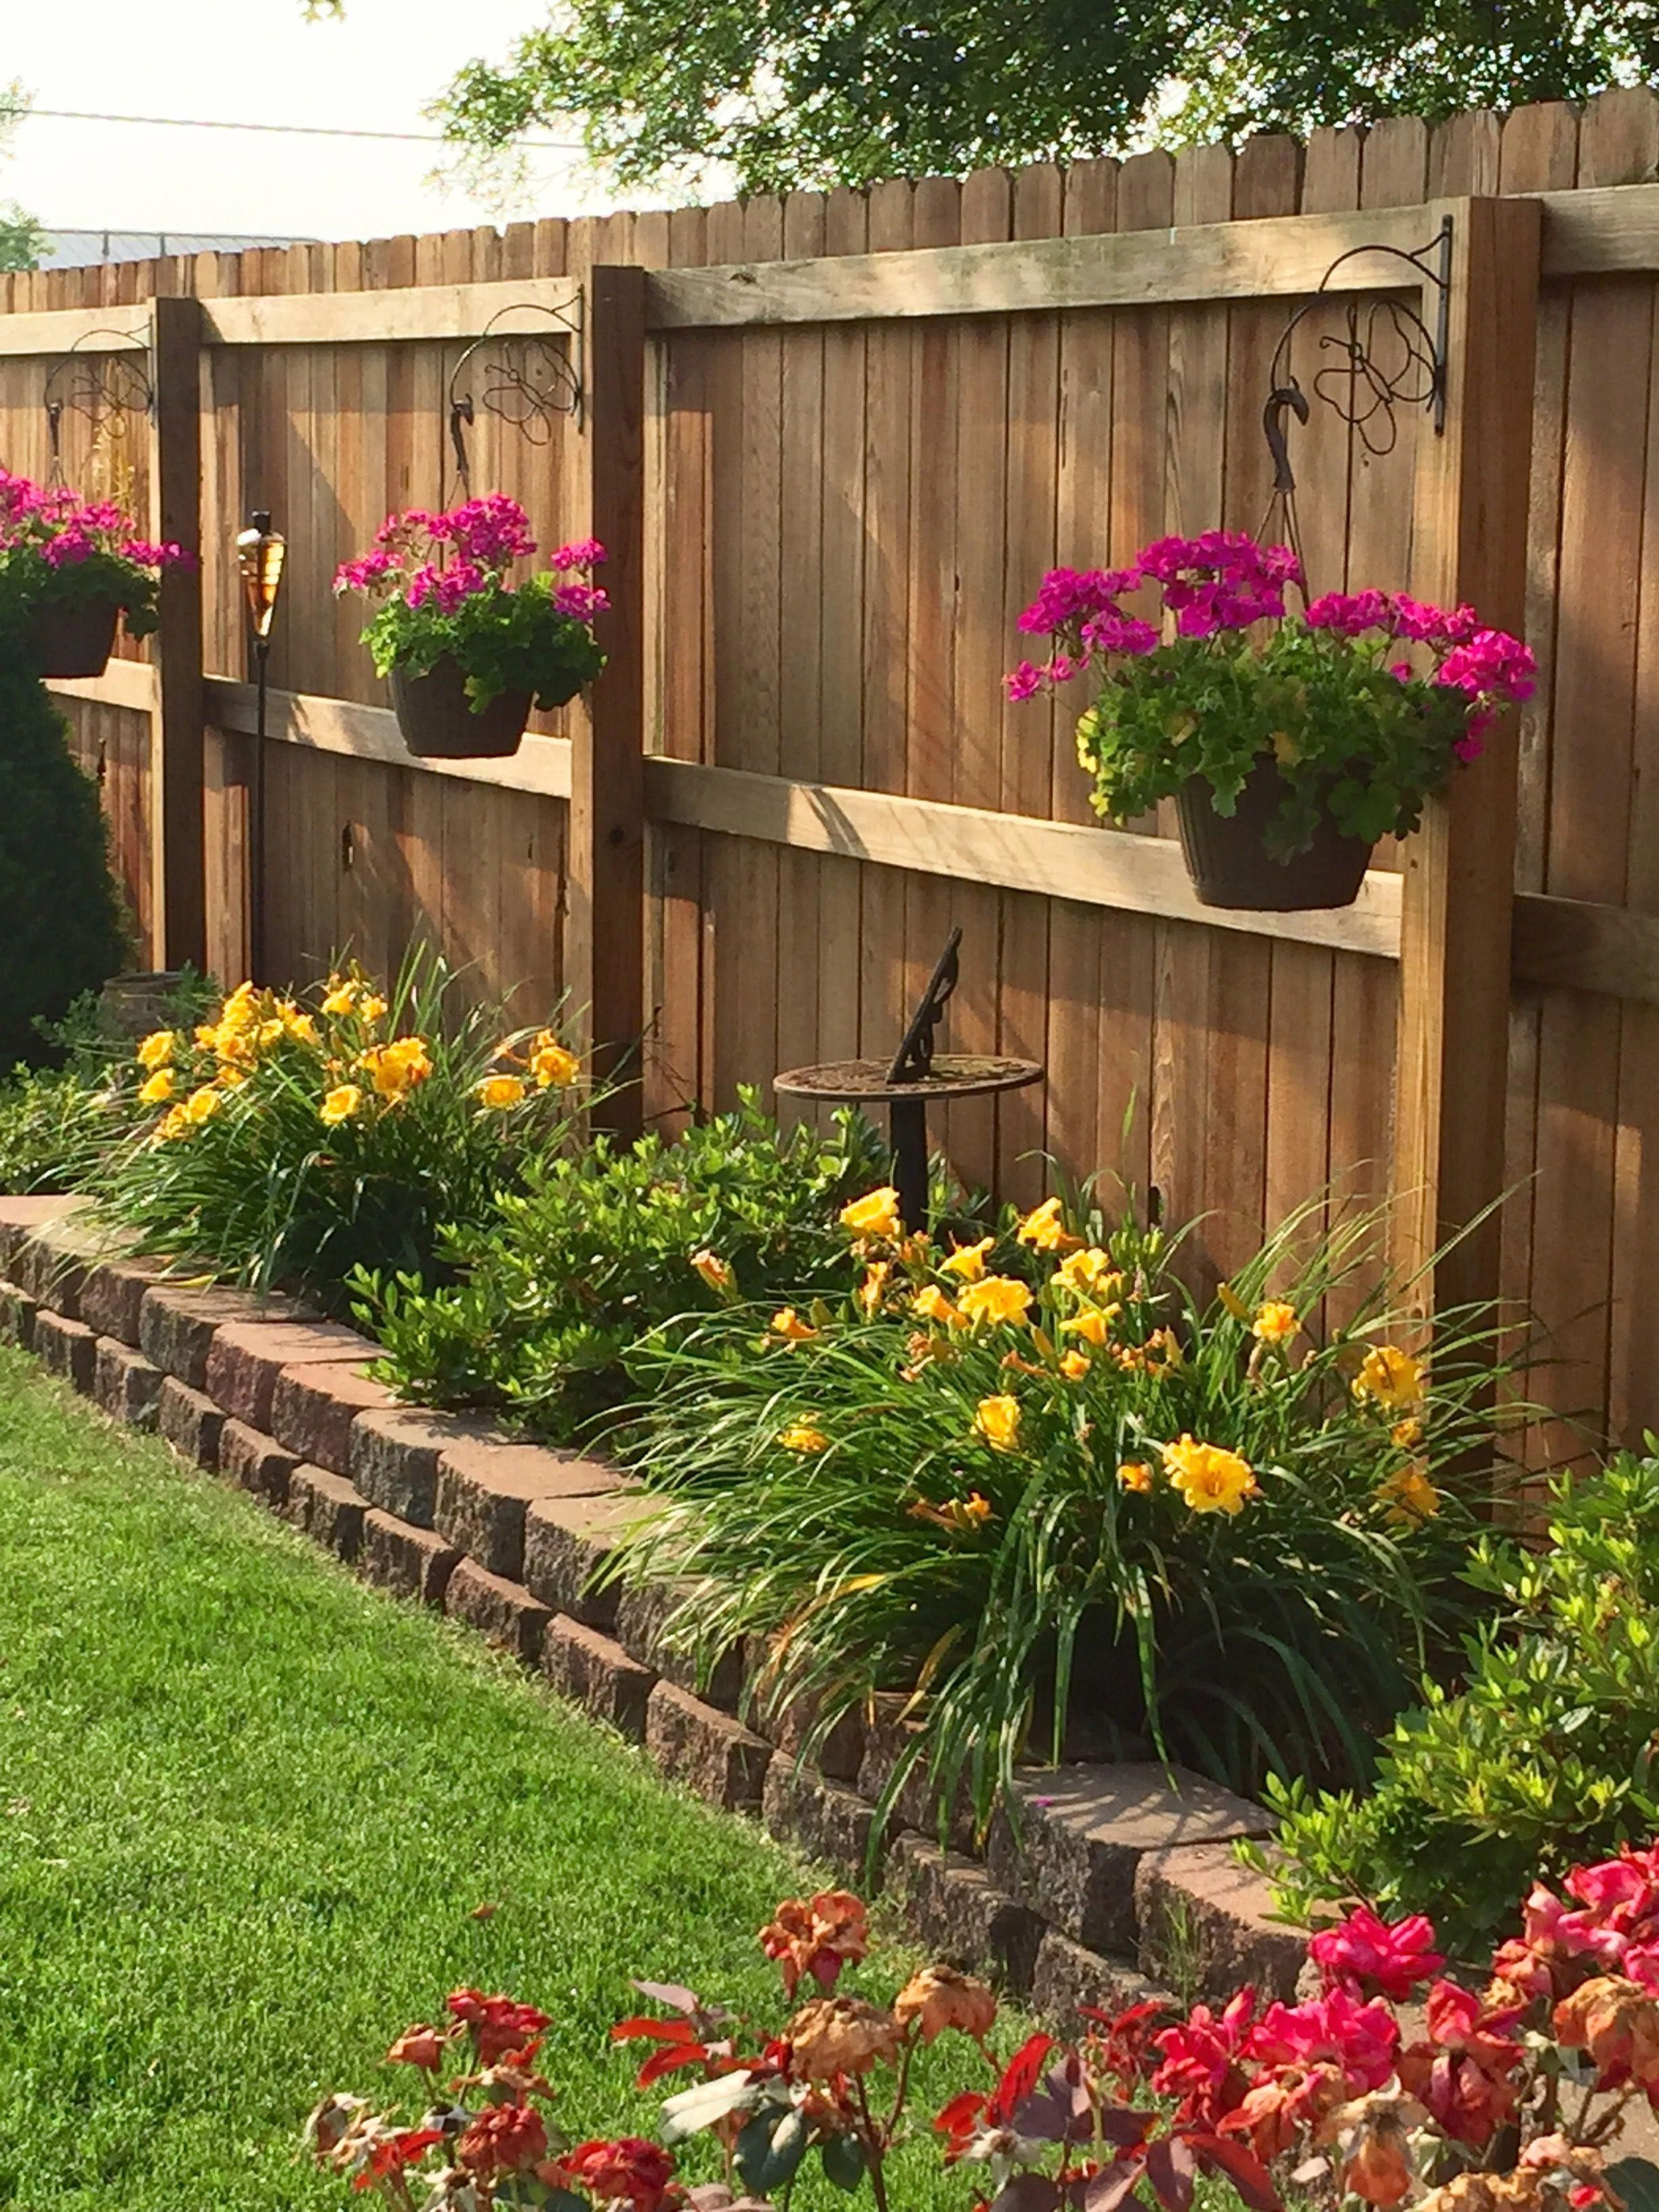 All about backyard landscaping ideas on a budget, small ...